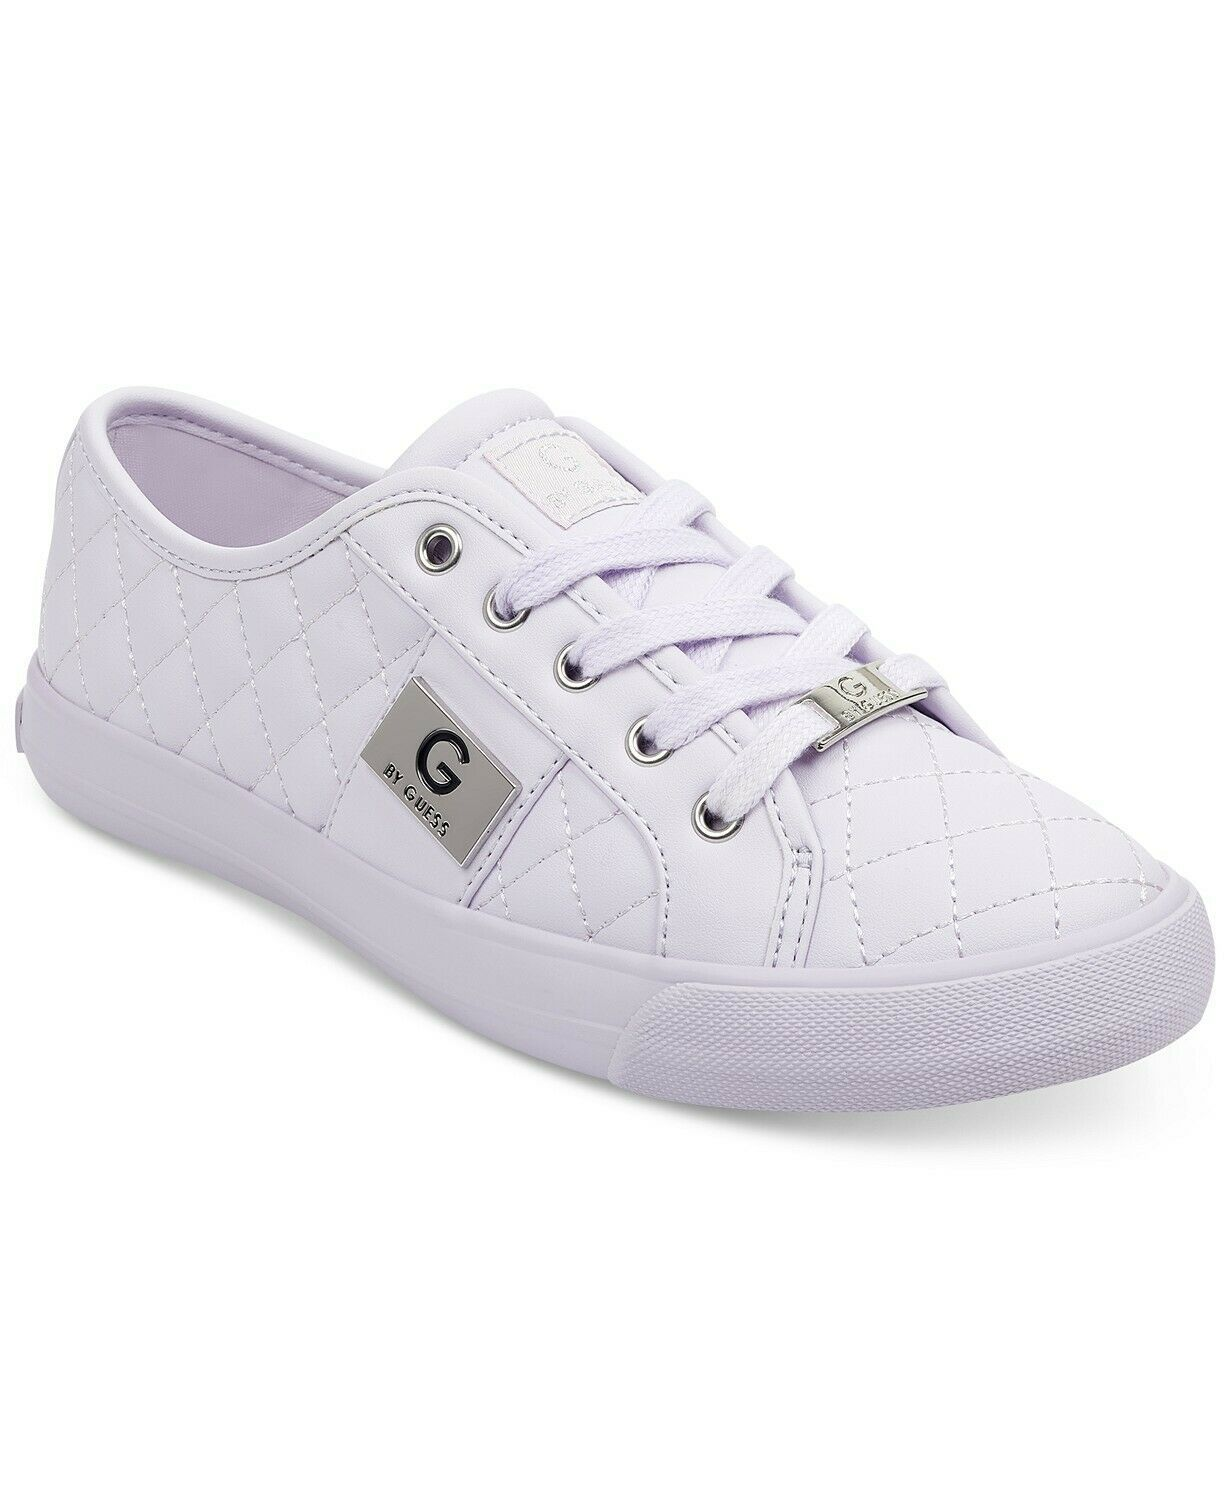 G by Guess Women's Lace Up Leather Quilted Pattern Sneakers Shoes Light Purple